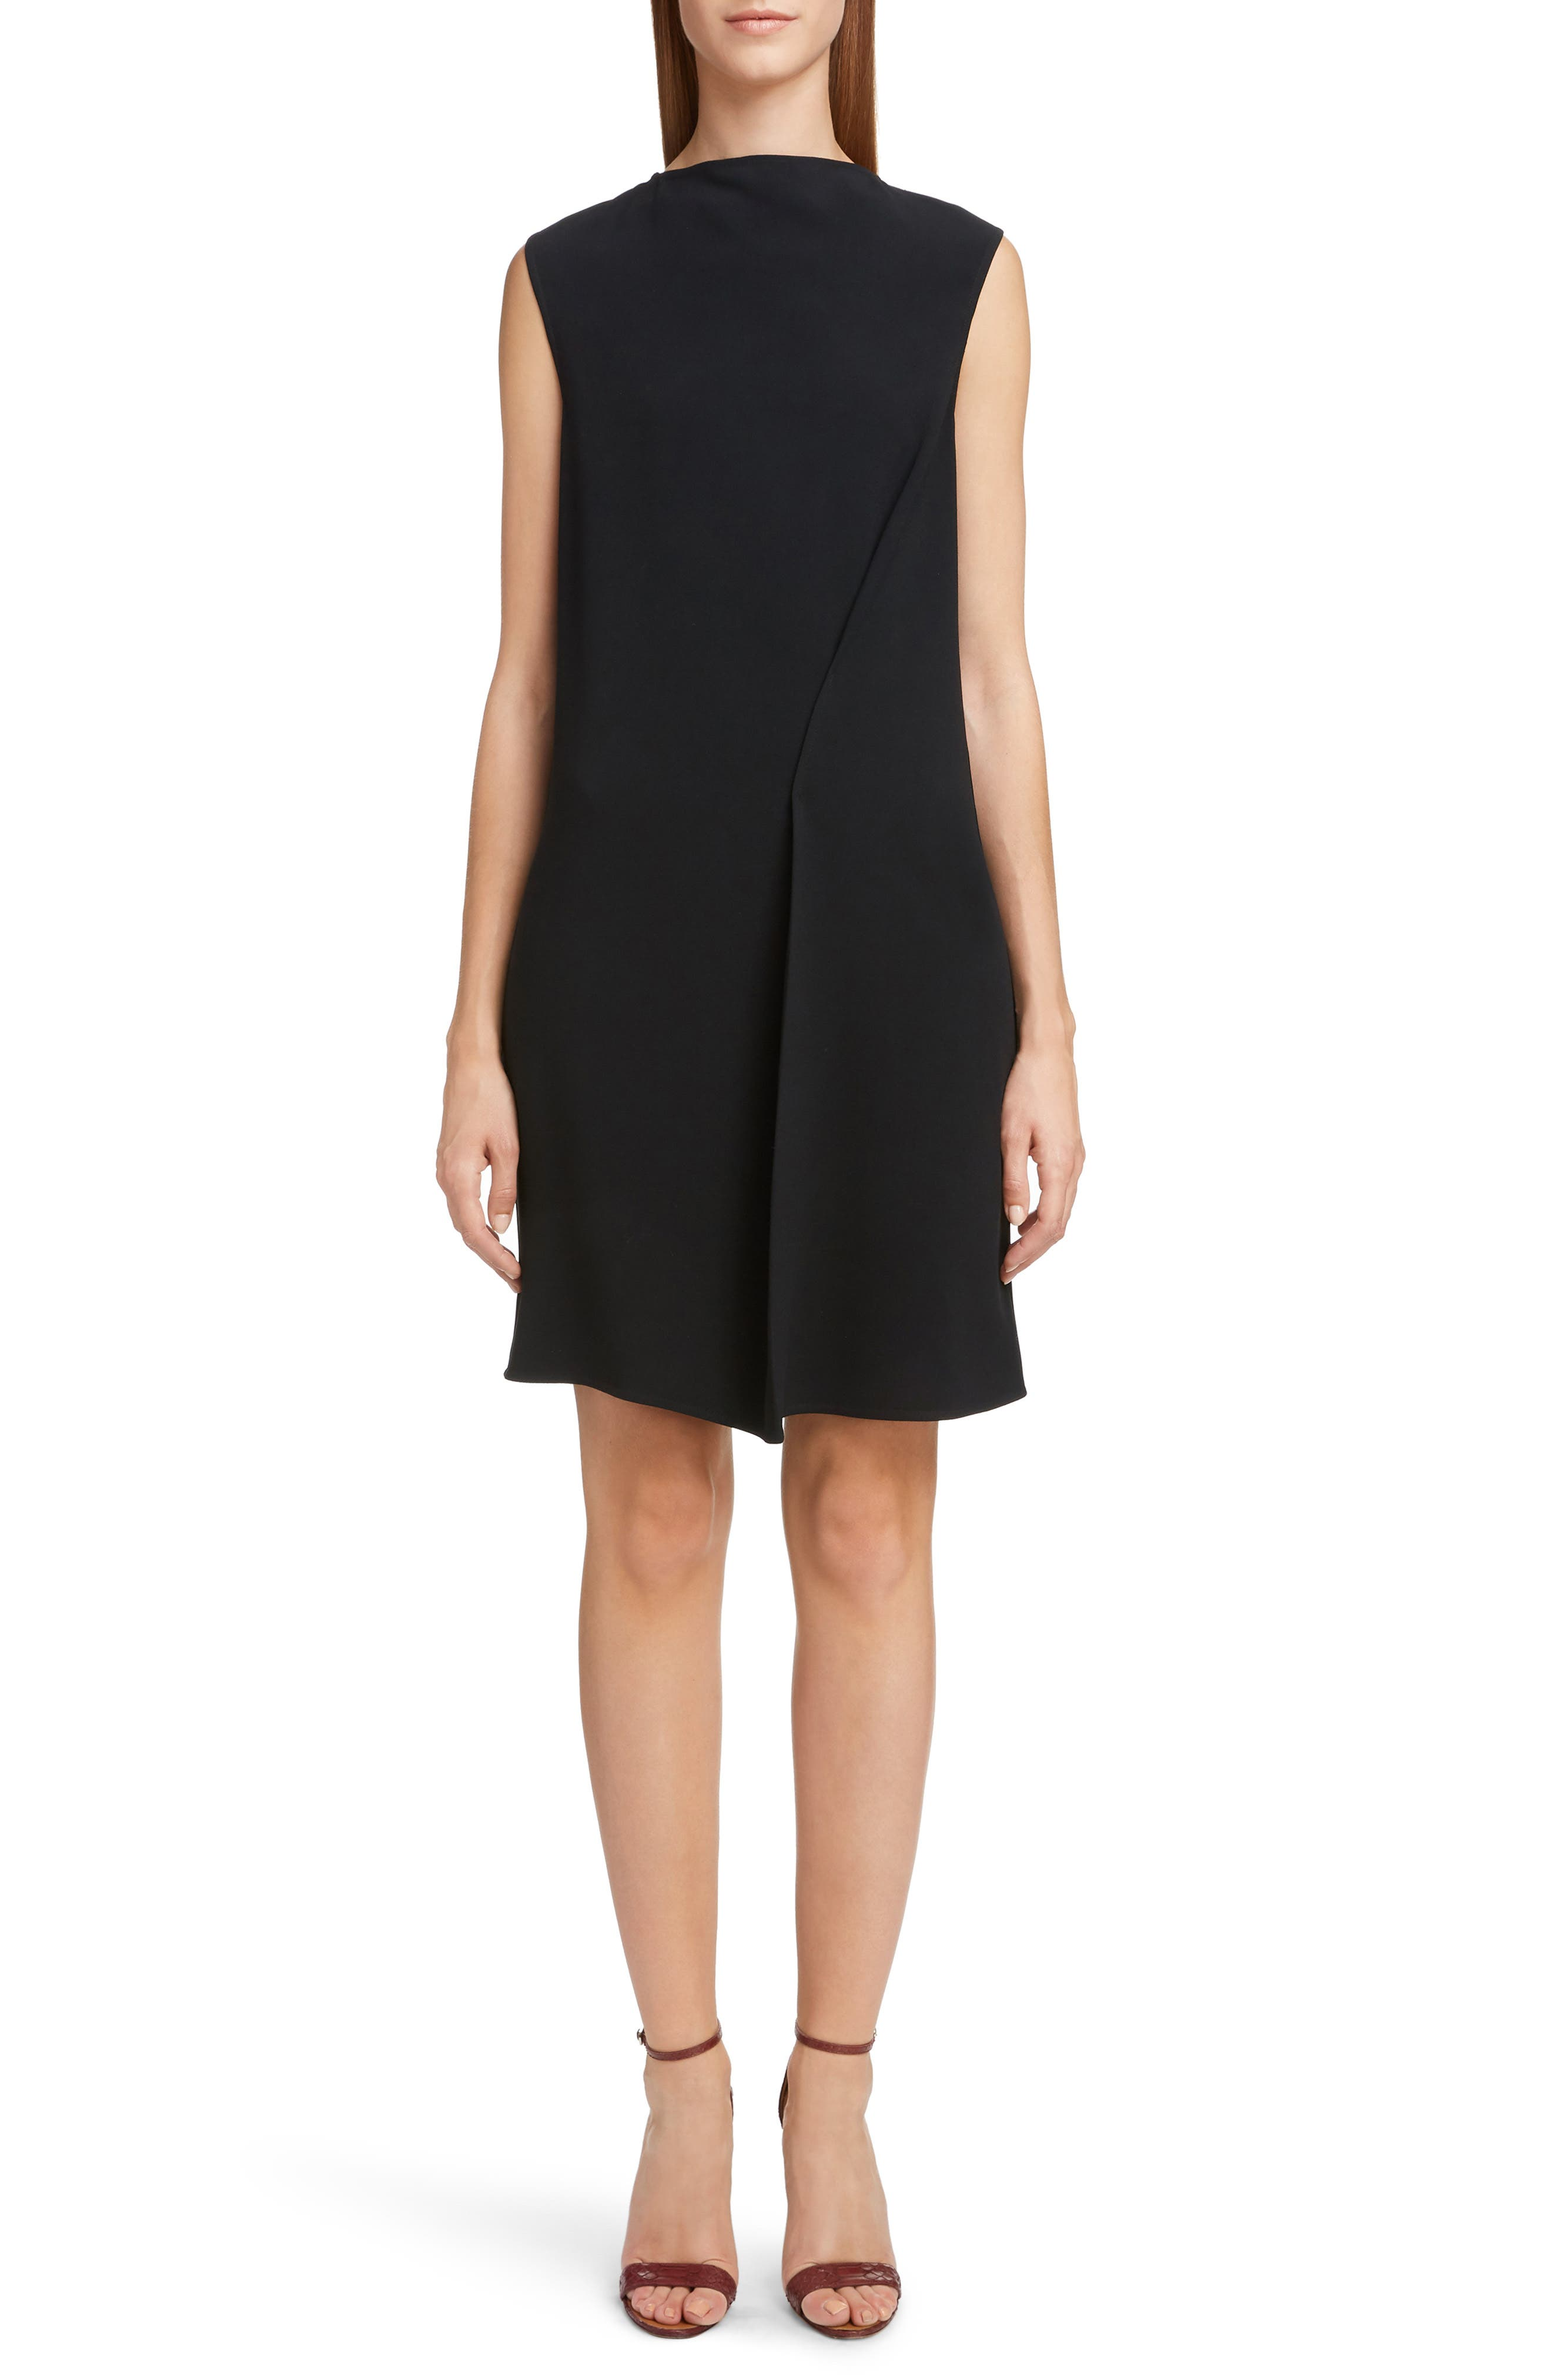 Victoria Beckham Asymmetrical Pleat Shift Dress, US / 6 UK - Black